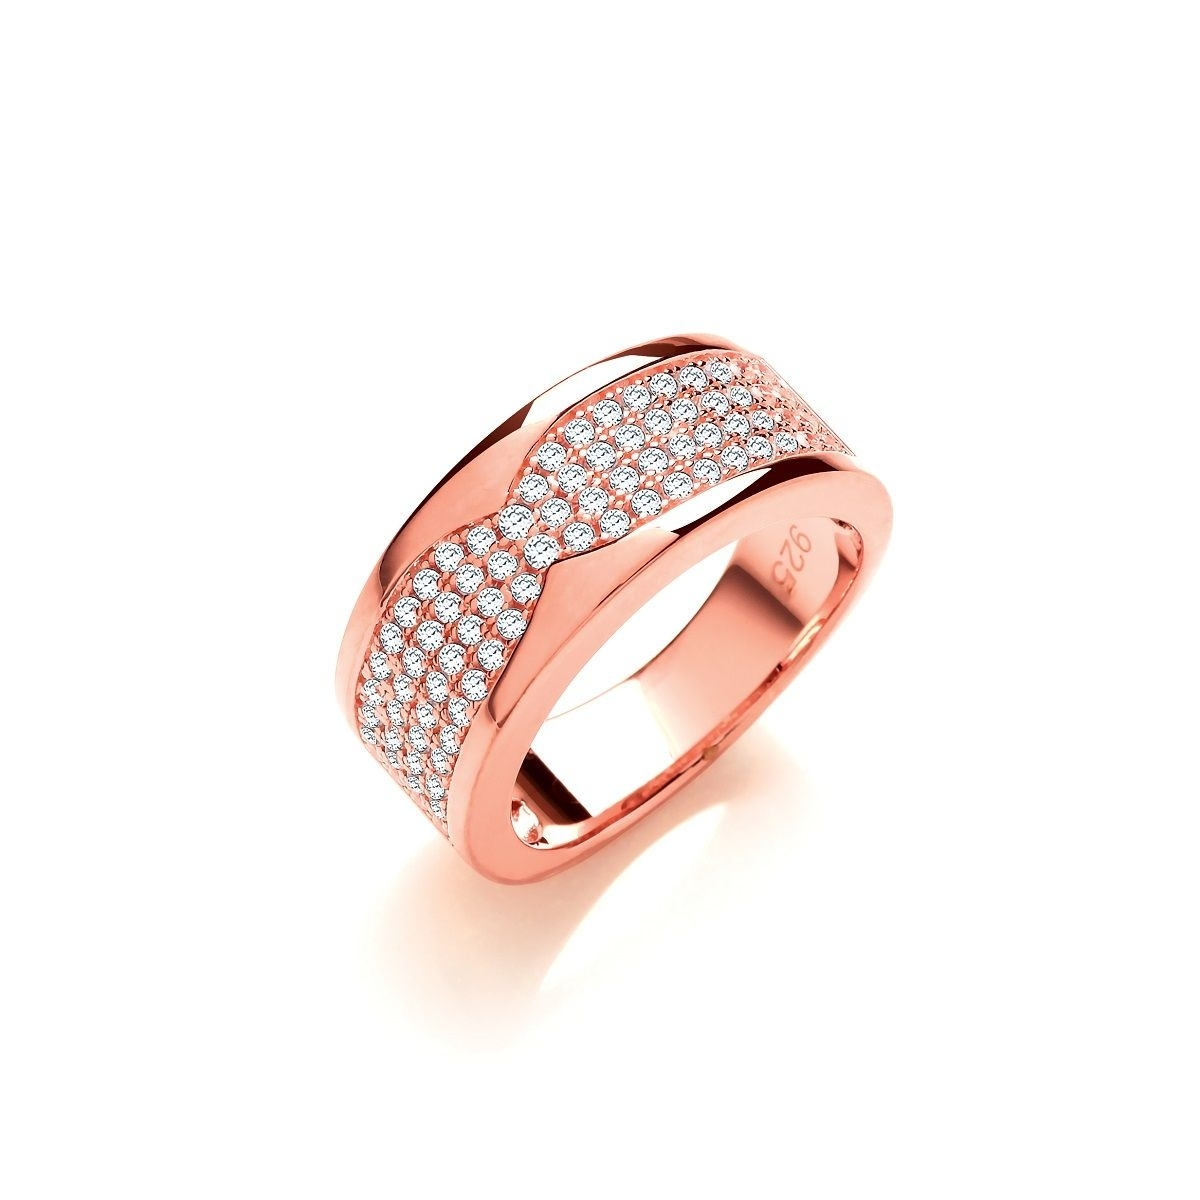 Rose Gold Plated Sterling Silver Cubic Zirconia Four Row Pave Half Regarding Most Current Diamond Four Row Anniversary Bands In Sterling Silver (Gallery 6 of 15)